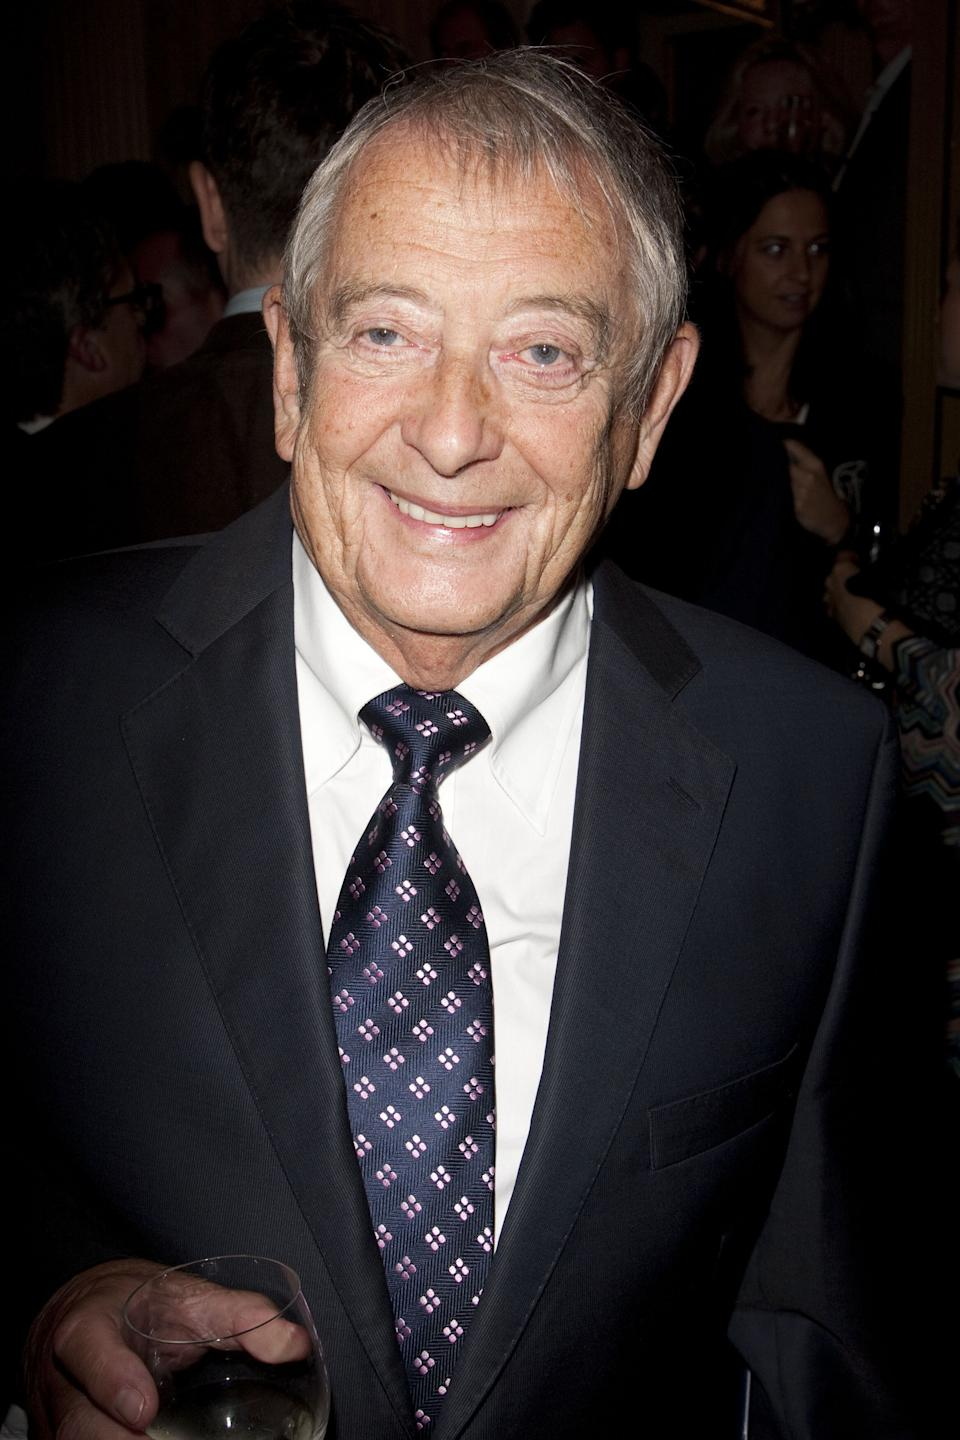 Actor Derek Fowlds was known for his roles in Heartbeat and Yes Minister.